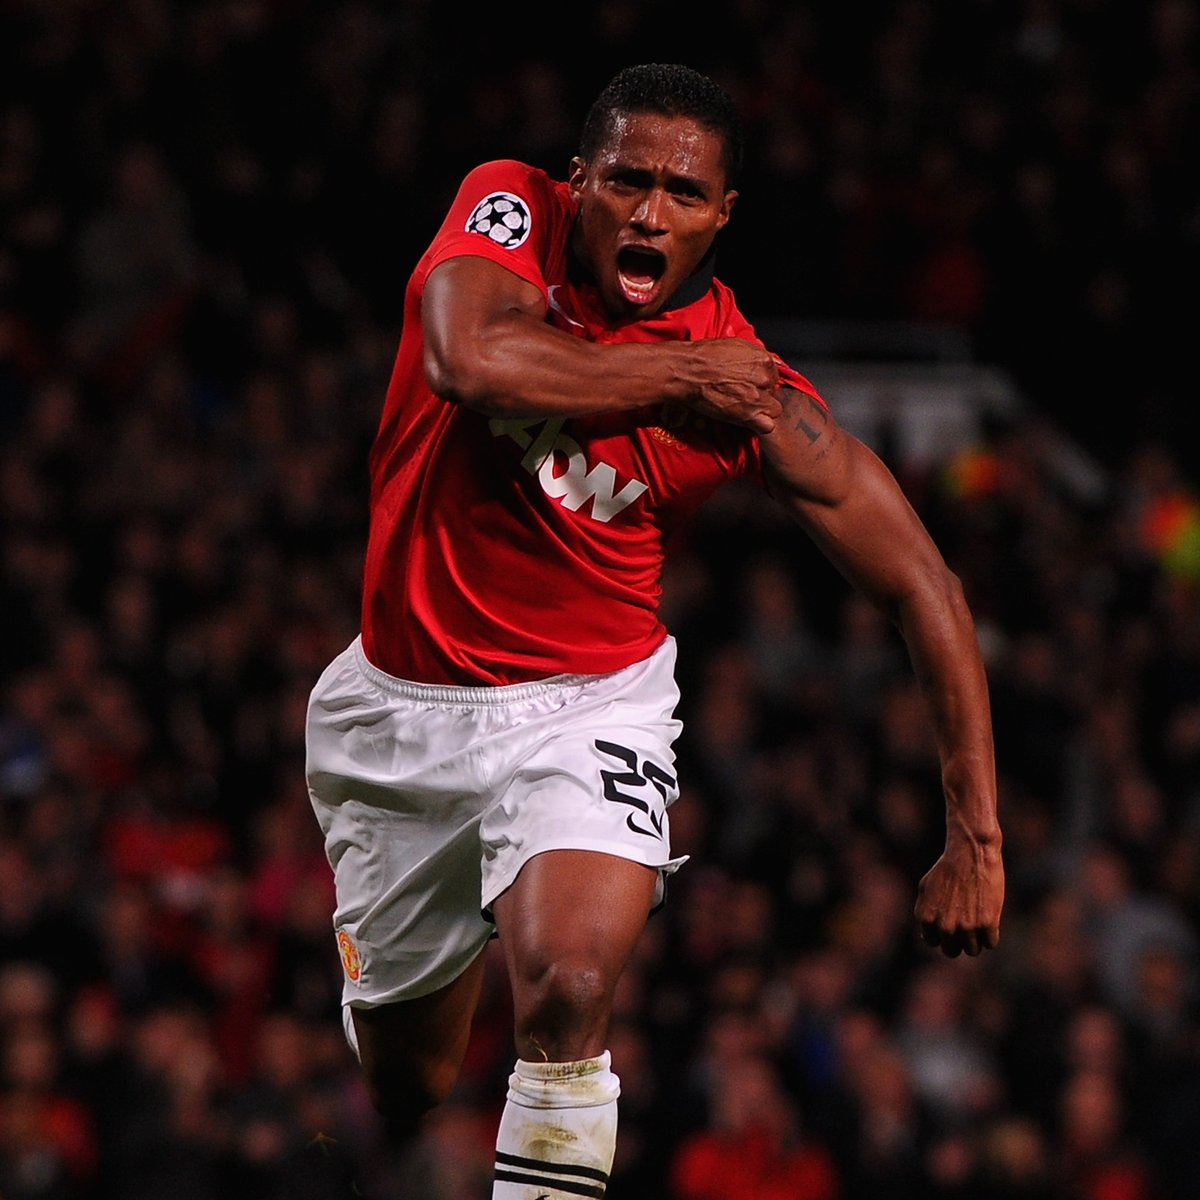 A special farewell to our former captain, @Anto_V25, who has called time on his playing career today.  Thank you for everything during your time at United and best of luck for your next chapter, Antonio ❤️  #MUFC https://t.co/hZeJm3t755 https://t.co/VzfOjGuo5y